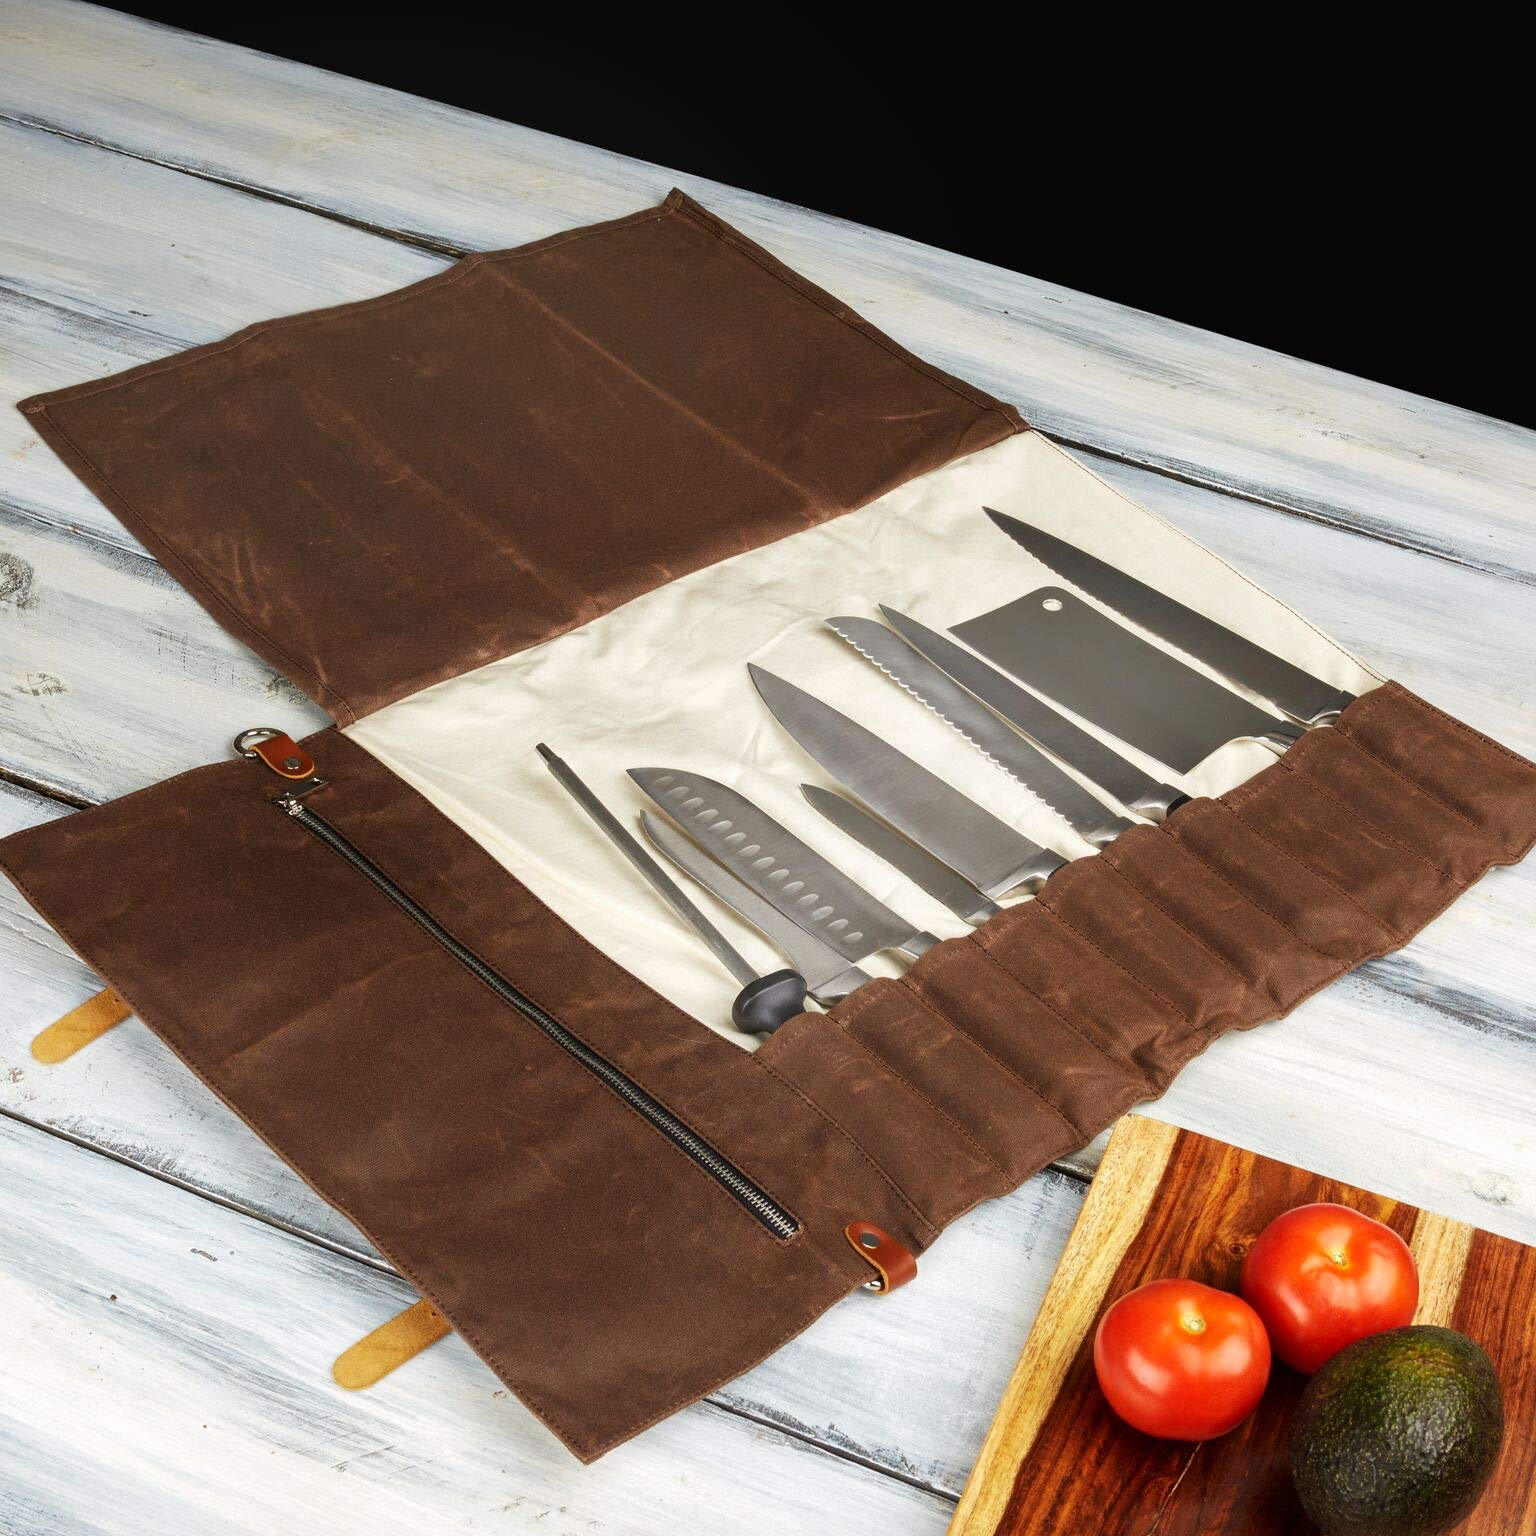 Chef Knife Roll Bag - Handmade Waxed Canvas and Leather Knife Bag Stores 10 Knives + Zipper Pocket and Shoulder Strap (Dark Brown) by Becken Leather Co. (Image #5)